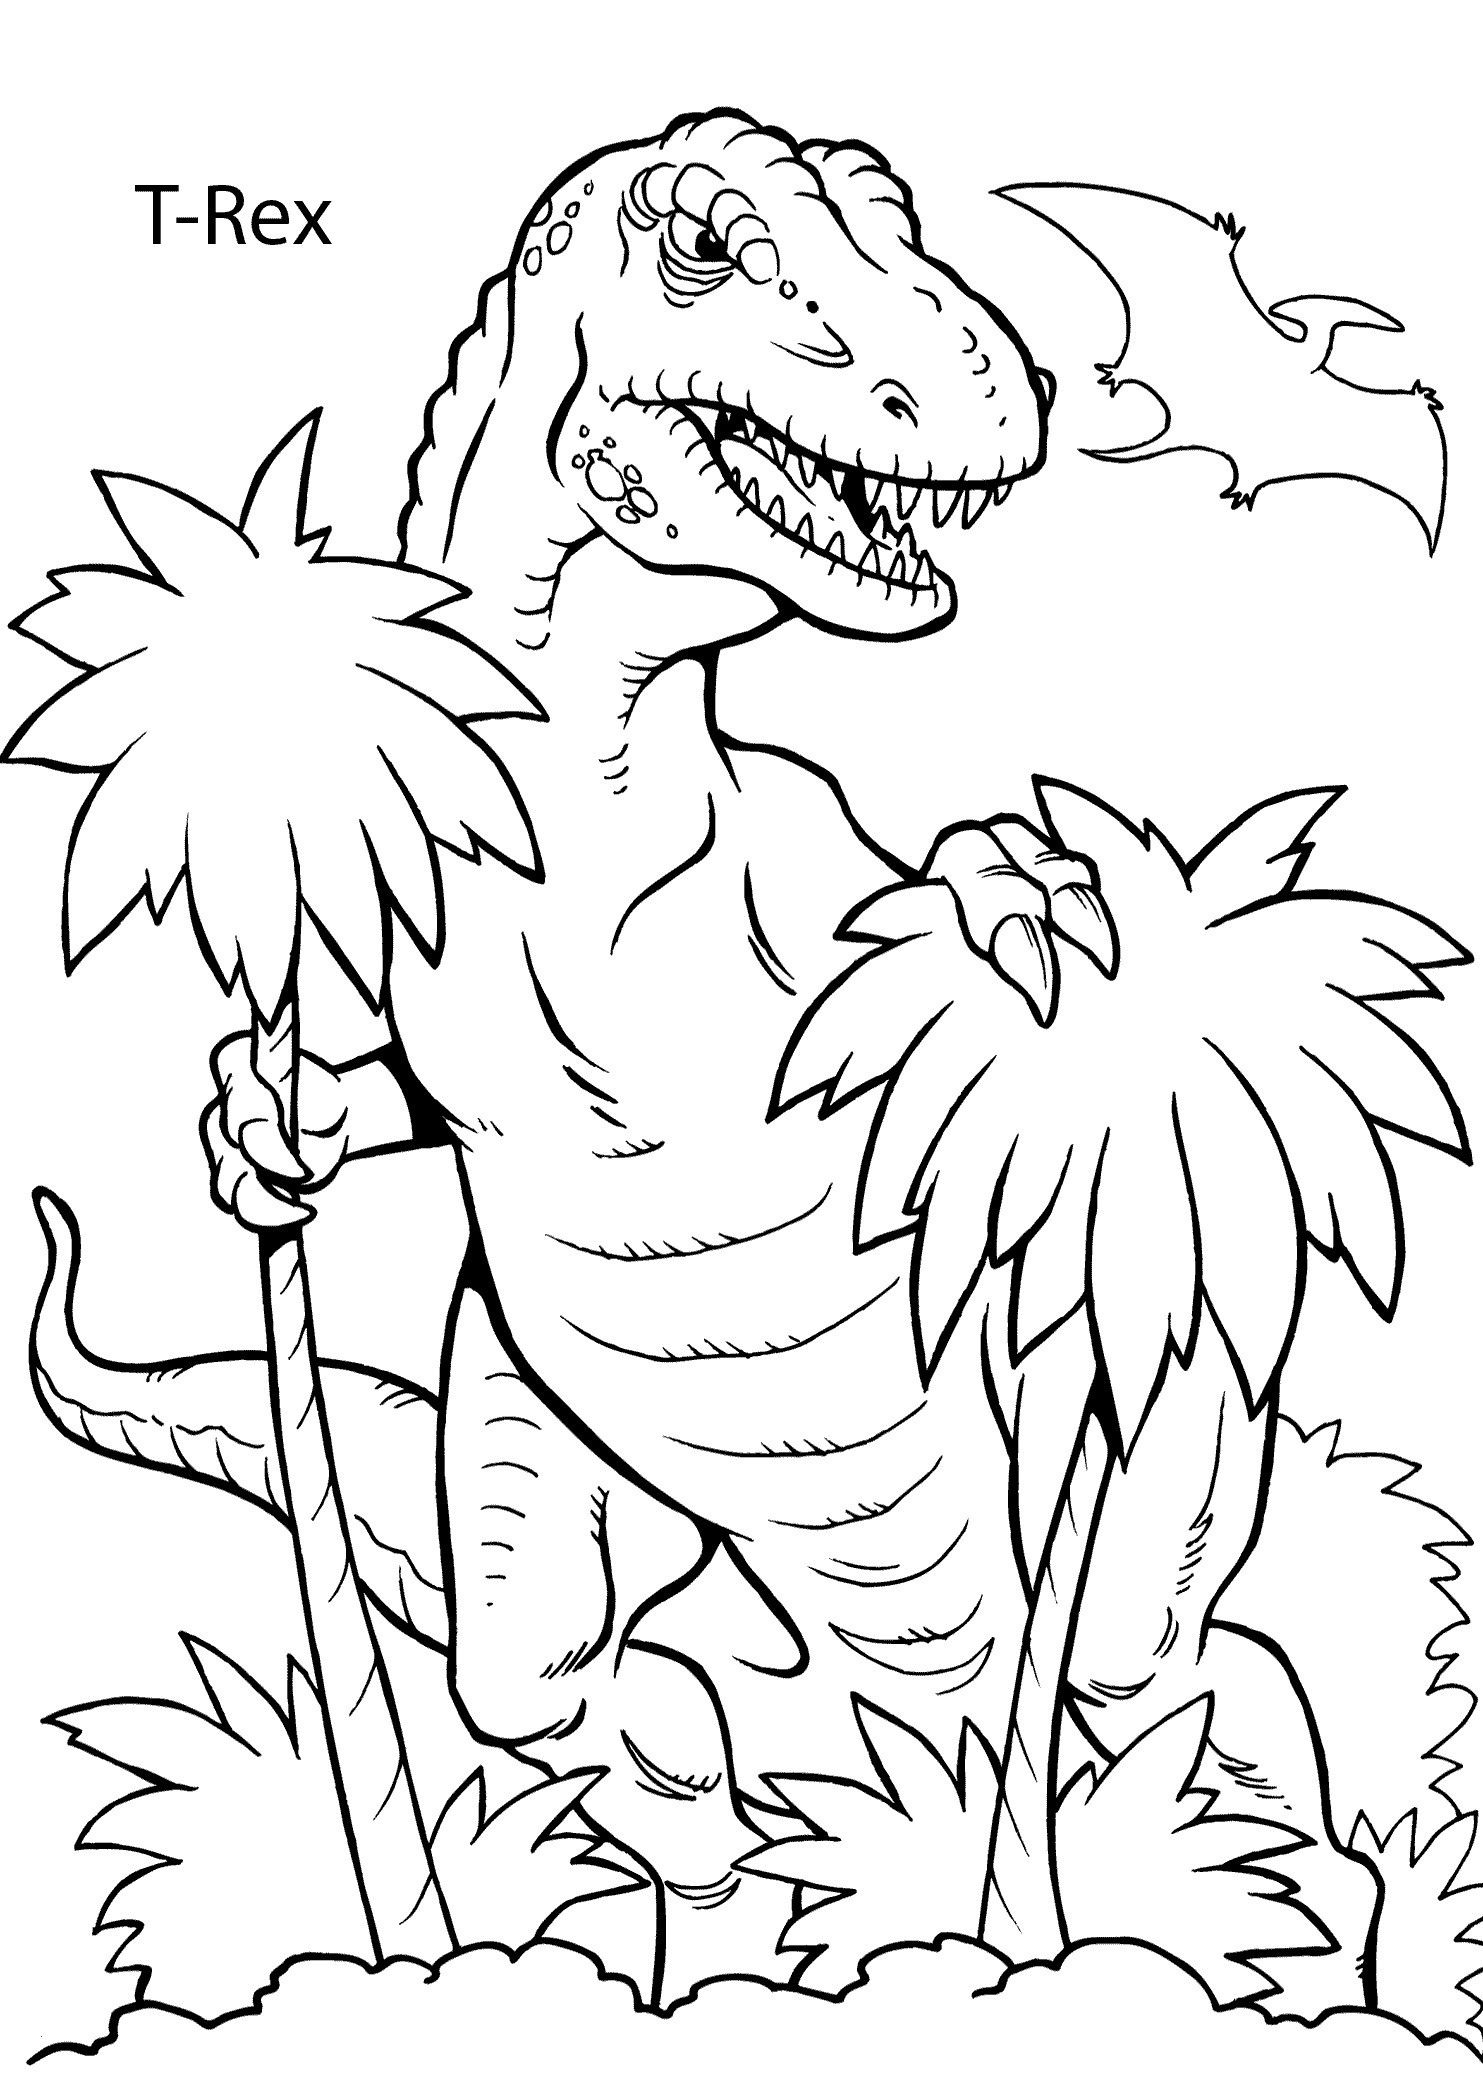 Dino Dan Dinosaurs Coloring Pages Dinosaurs Coloring Pages